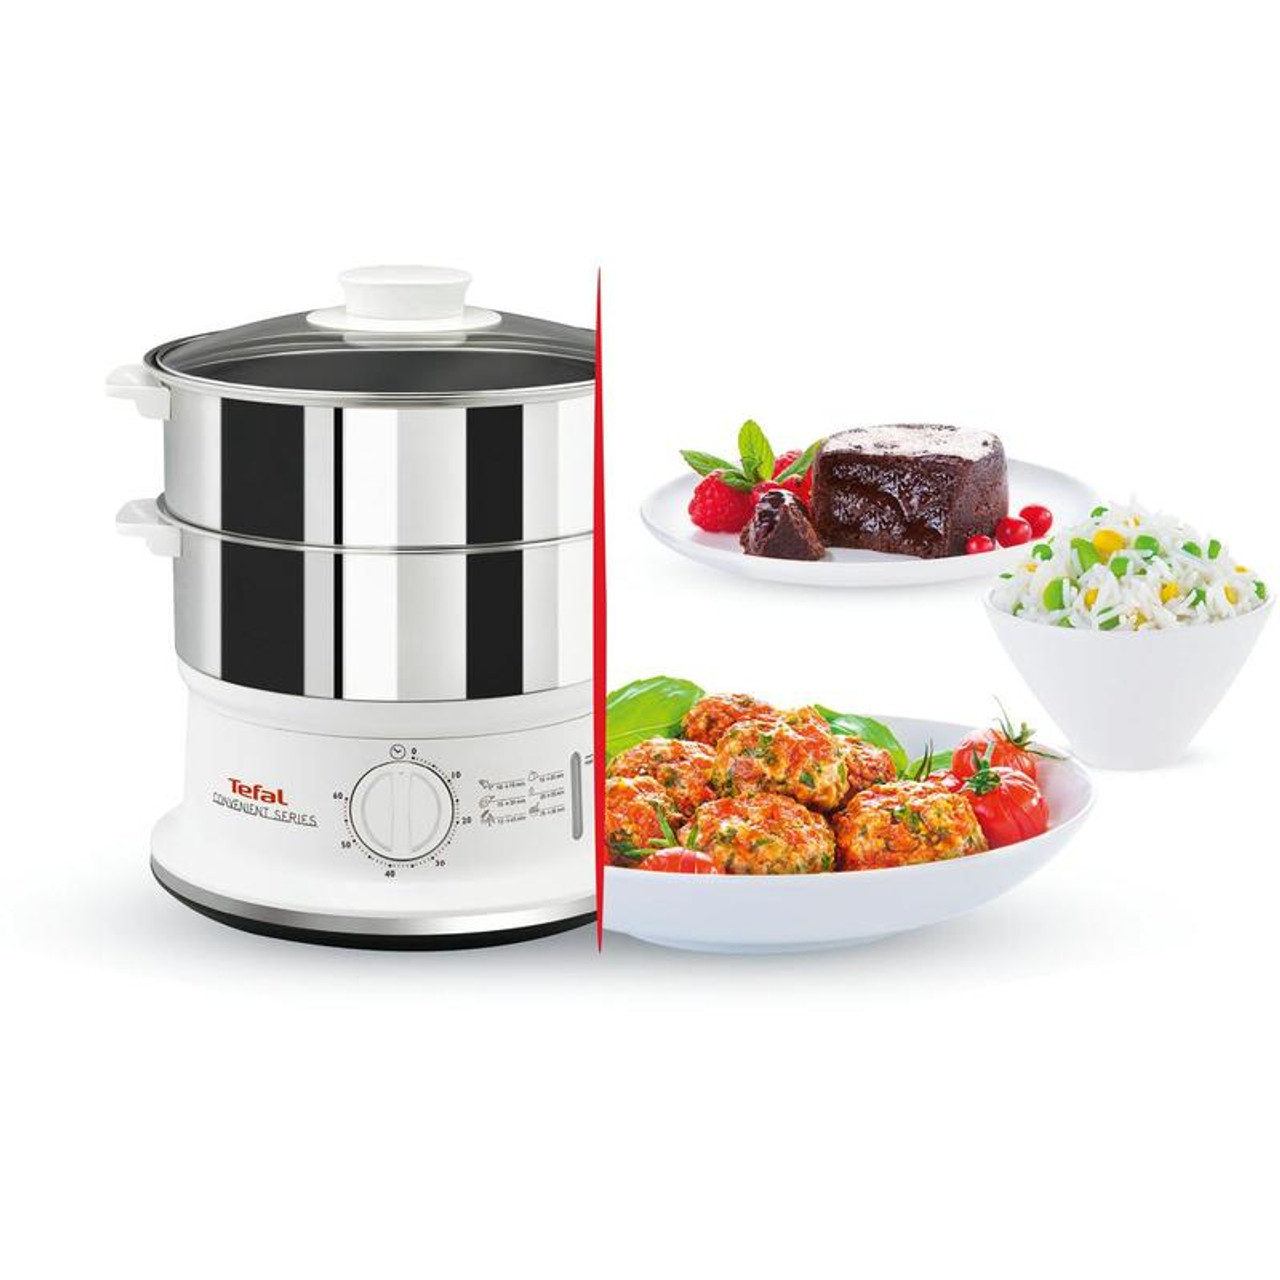 Tefal VC1451 Convenient Series 2-Tier Steamer With 6L Capacity - Stainless Steel